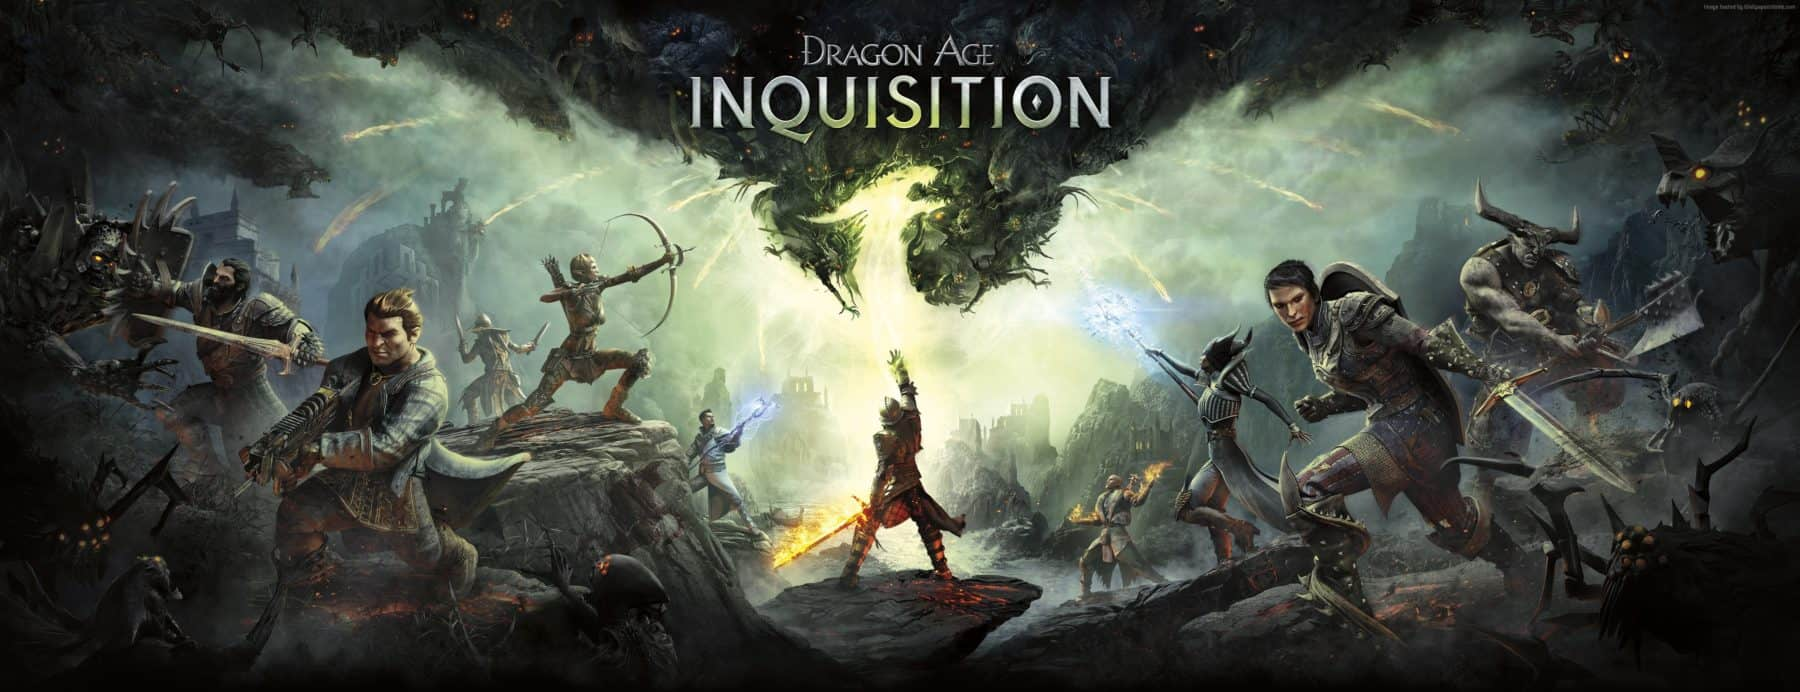 Game Review: Dragon Age Inquisition (Xbox One)